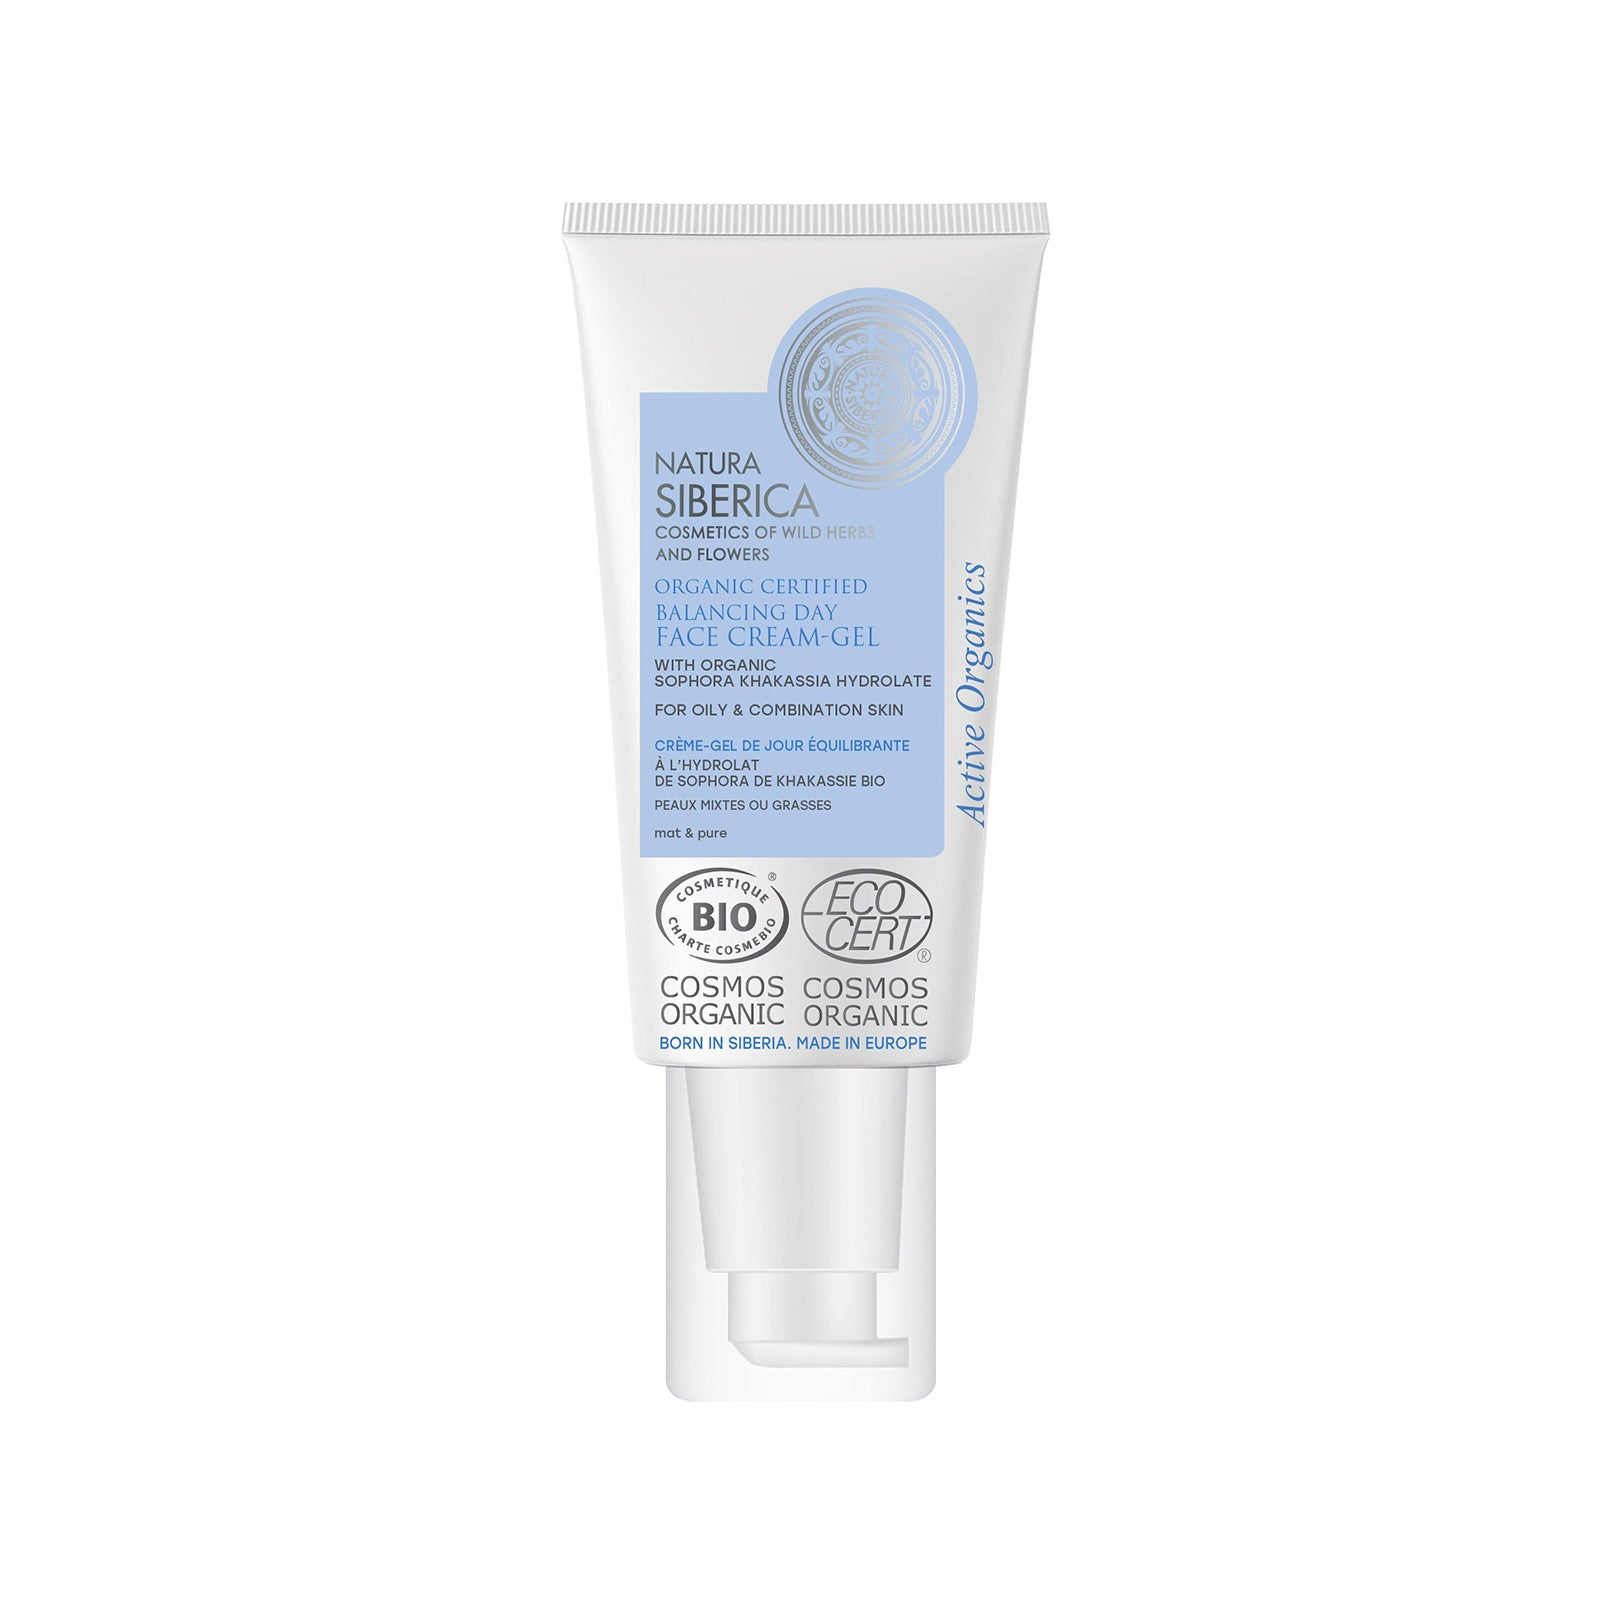 Balancing Face Cream-Gel for oily & combination skin, 50 ml